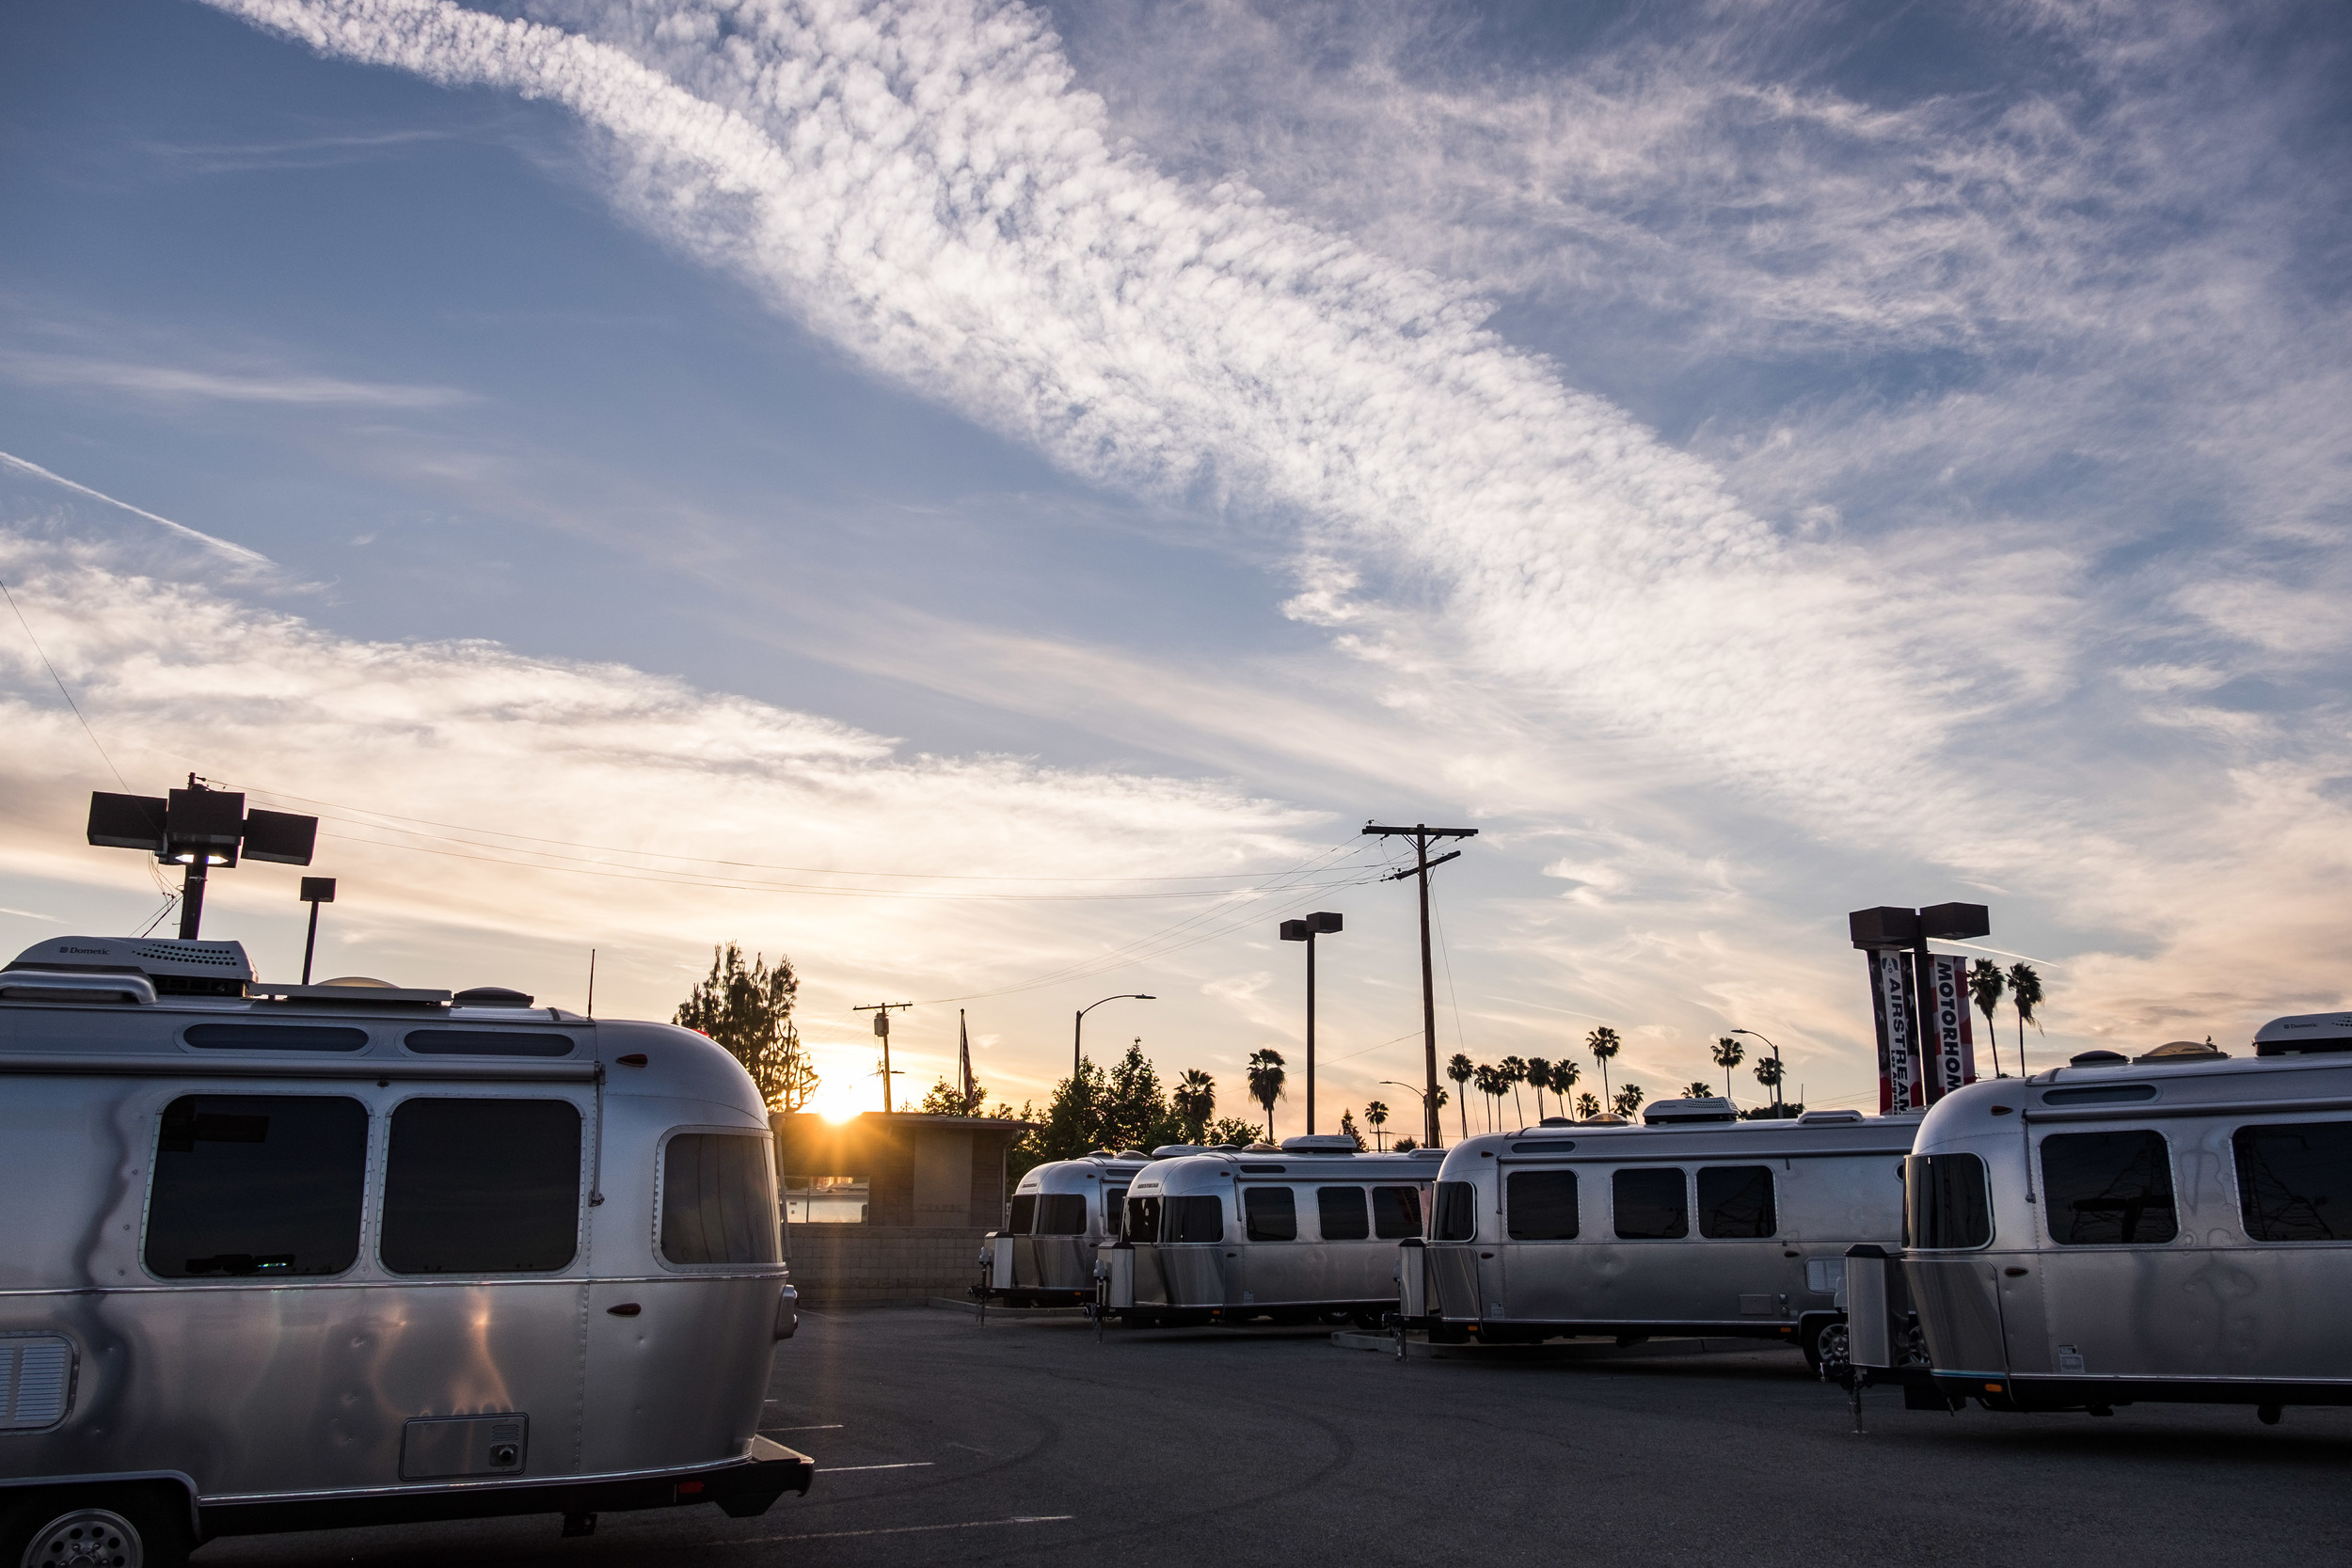 Airstream's aligned at Airstream Los Angeles (on our way out of town to Park #21.)